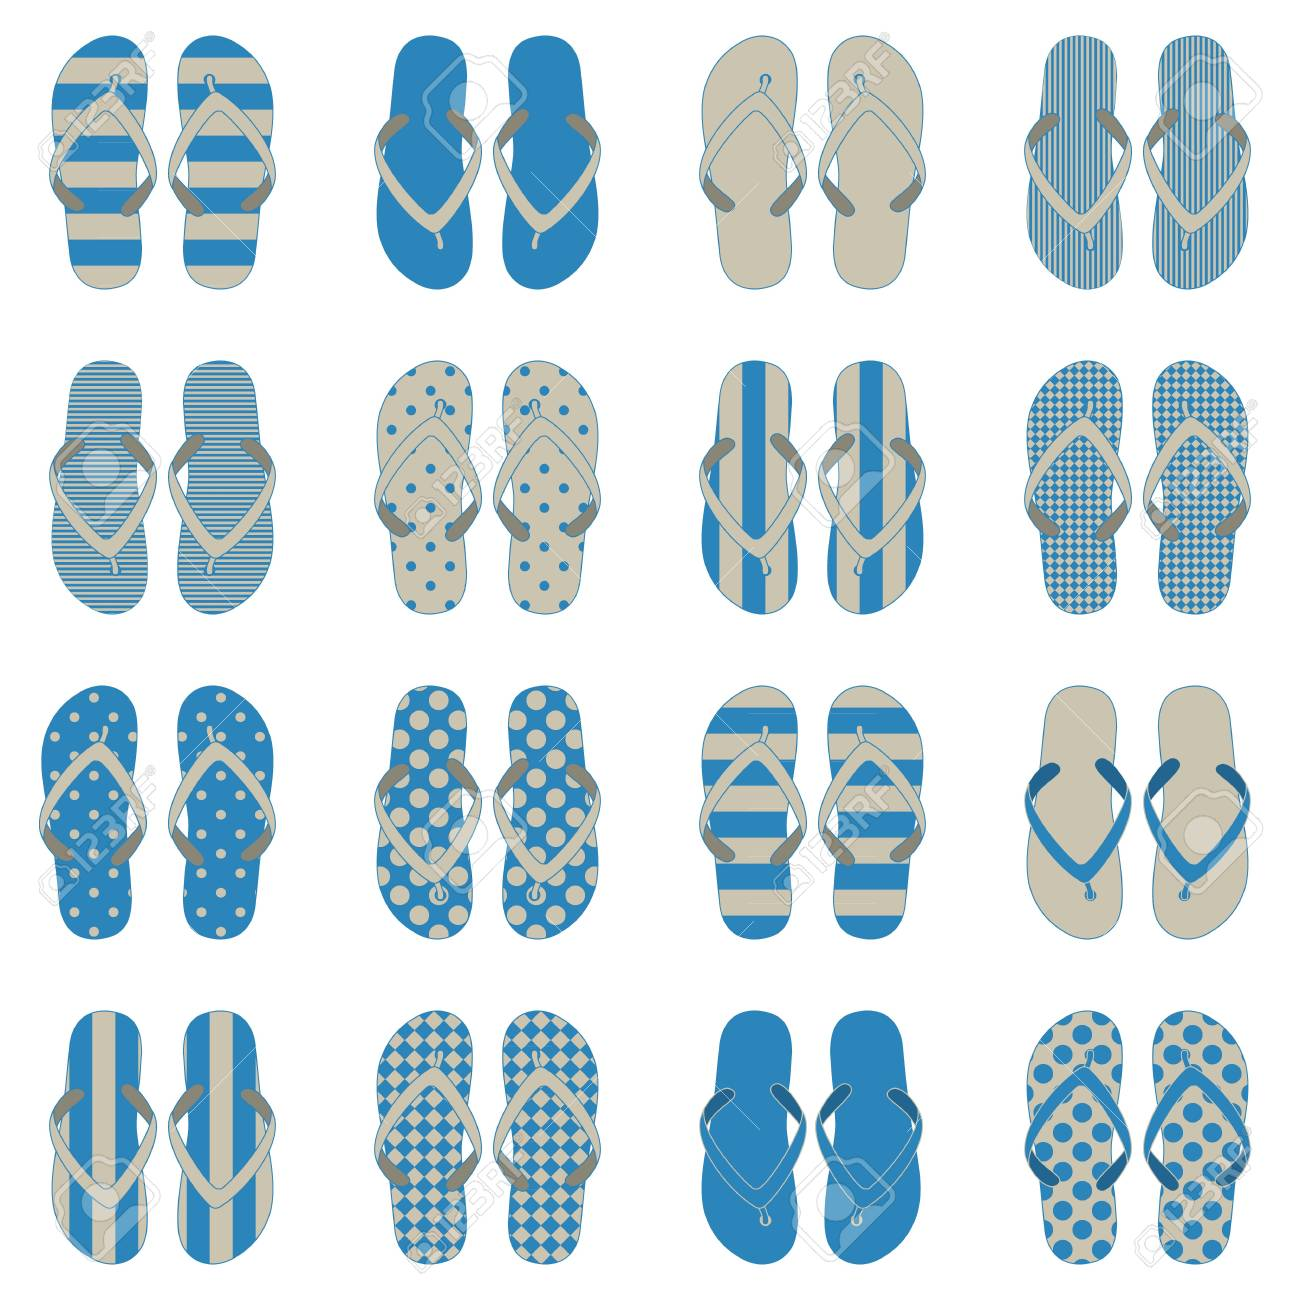 caef42dff Pop Art style flip flops in a colorful checkerboard design. Stock Vector -  37749834